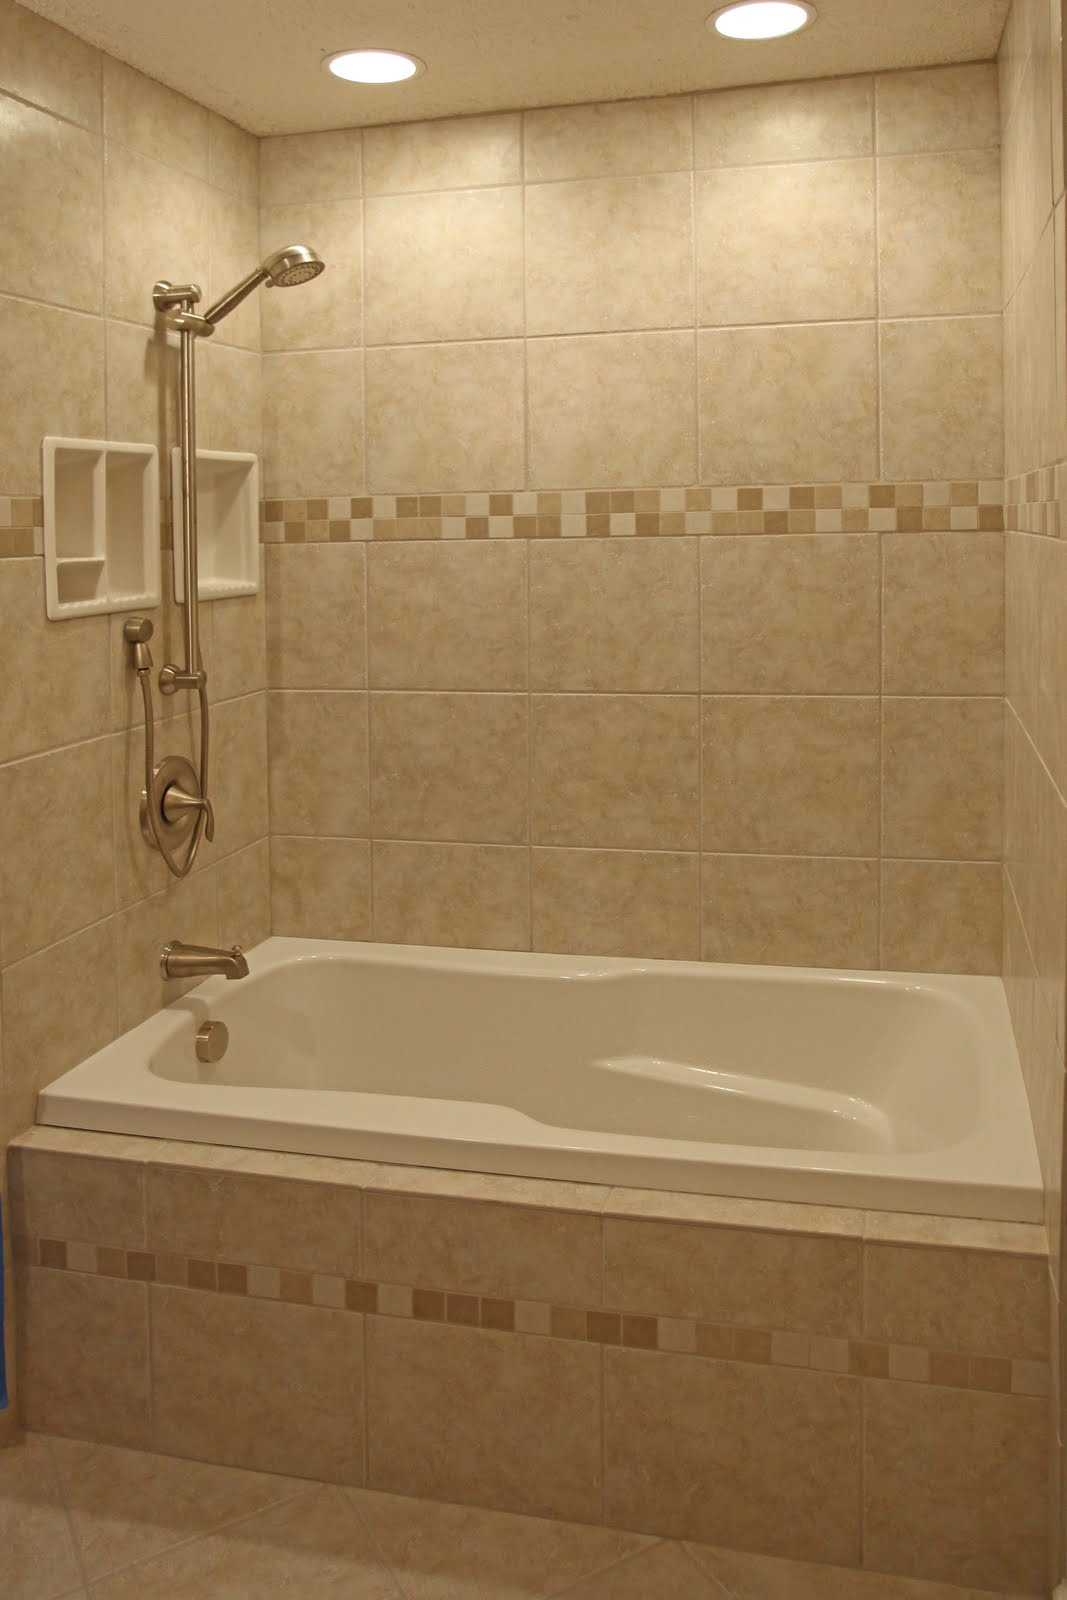 Bathroom remodeling design ideas tile shower niches for Ceramic bathroom tile designs